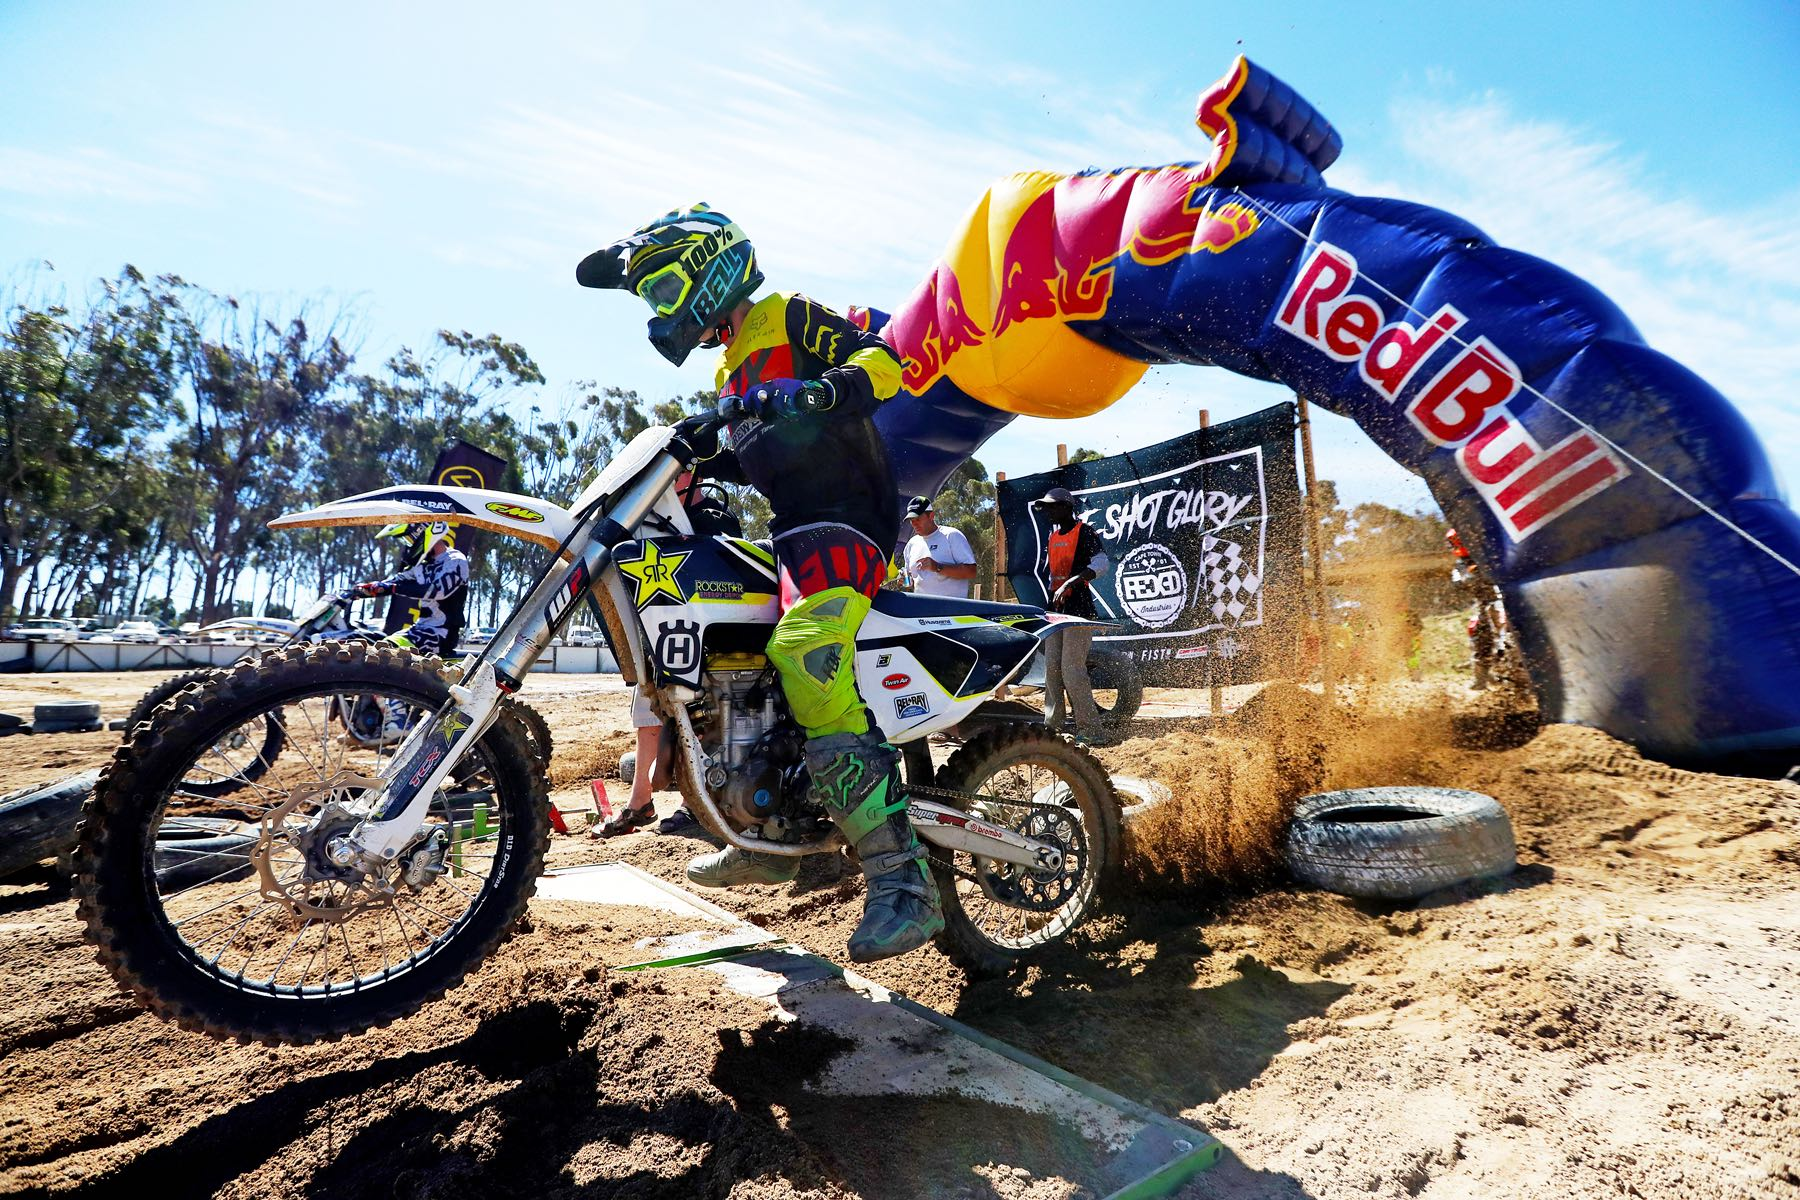 Get ready to witness the second installment of Holeshot Glory and see some of SA's top Motocross riders going head to head.